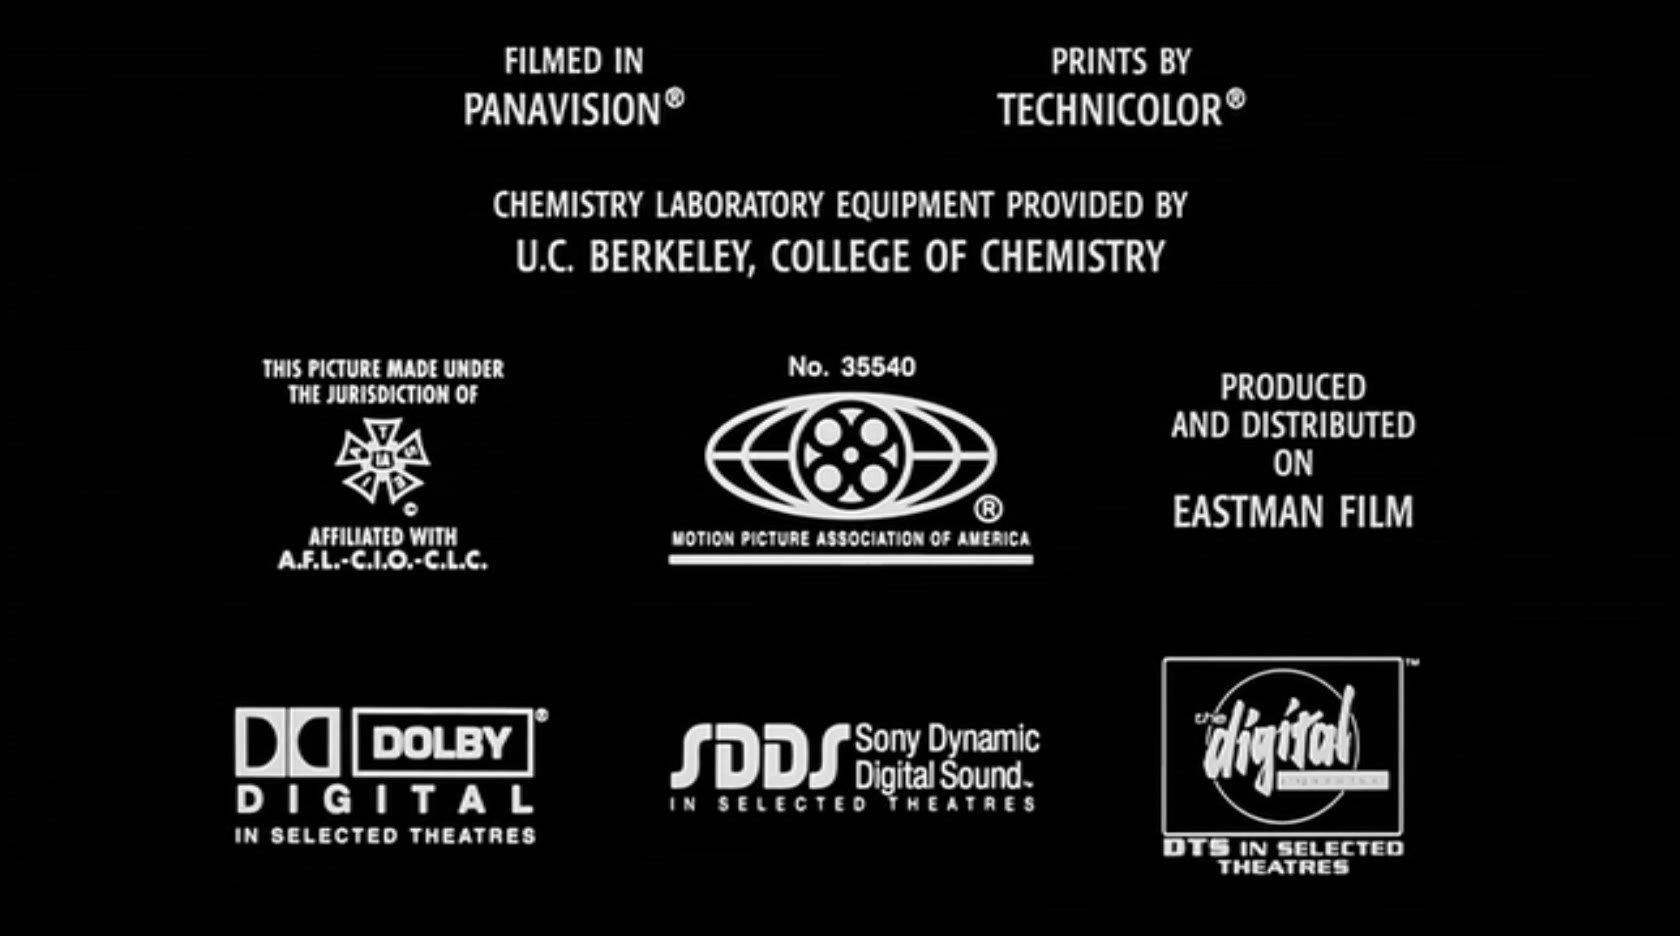 image flubber mpaa credits jpg logopedia  the logo and express logo lion meaning express lion logo shirts